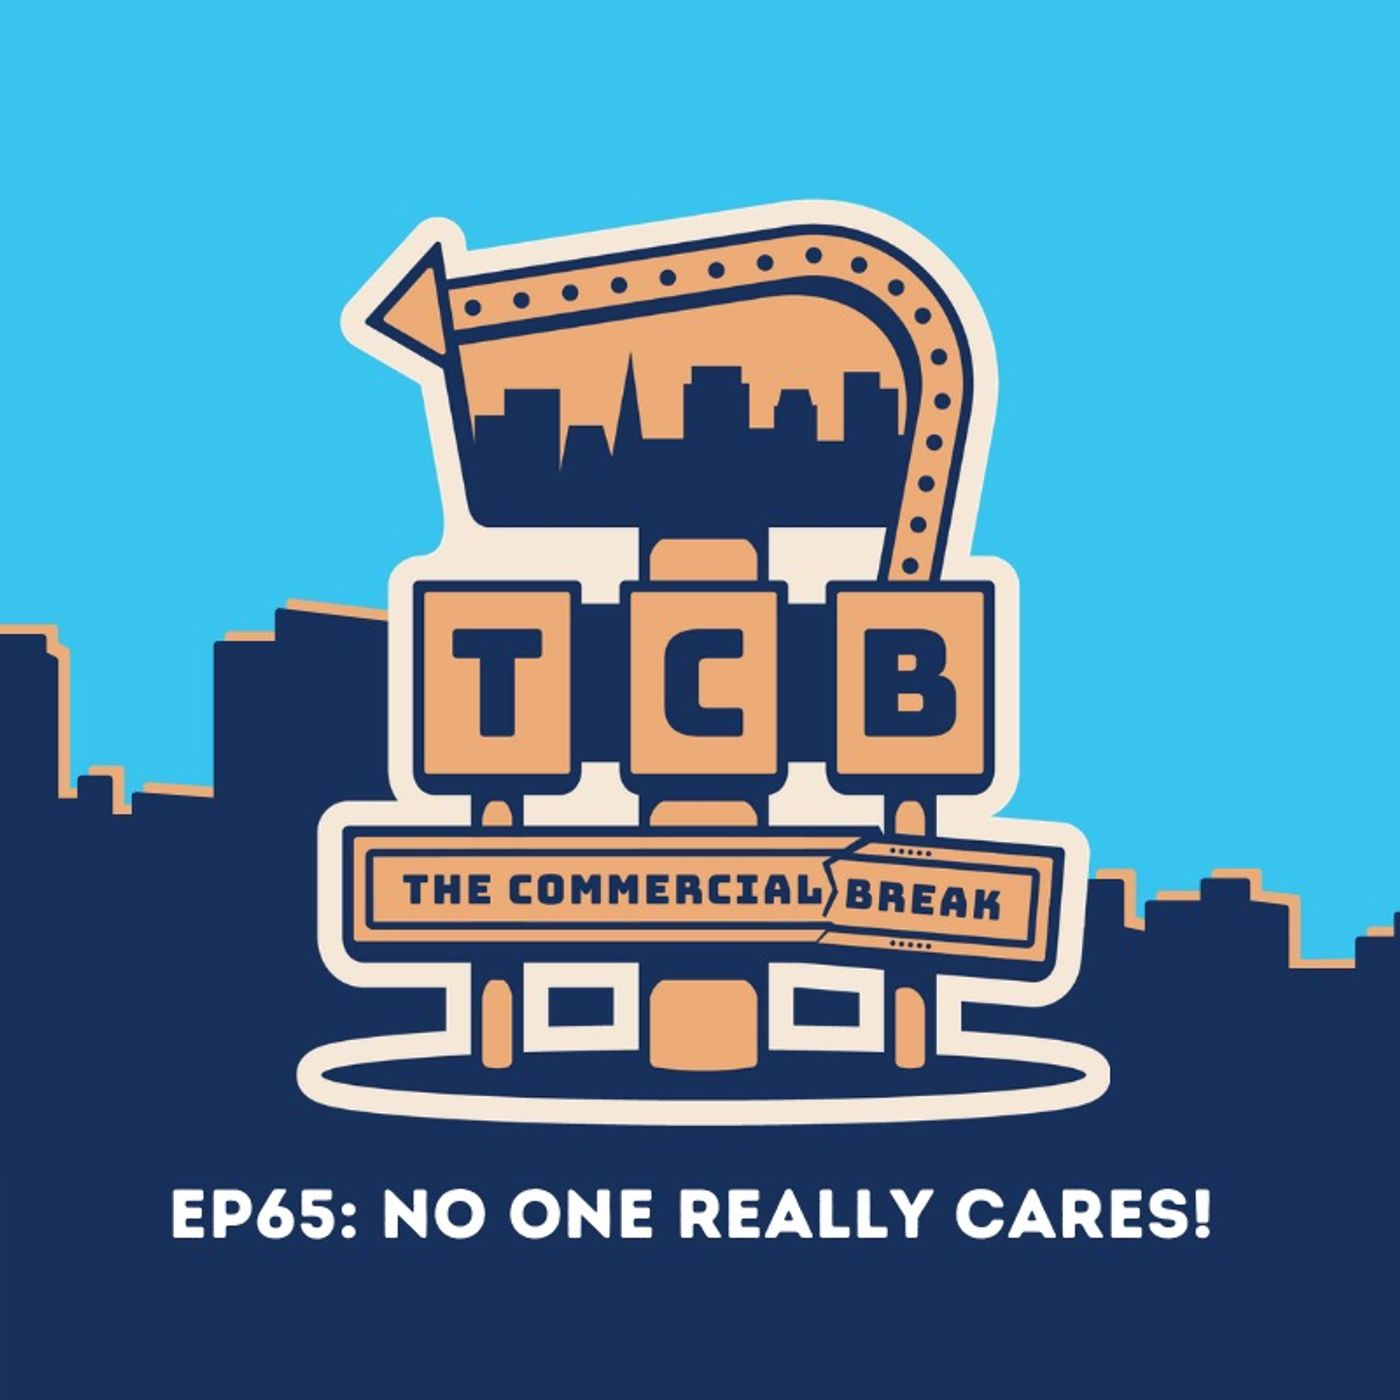 EP65: No One Really Cares!